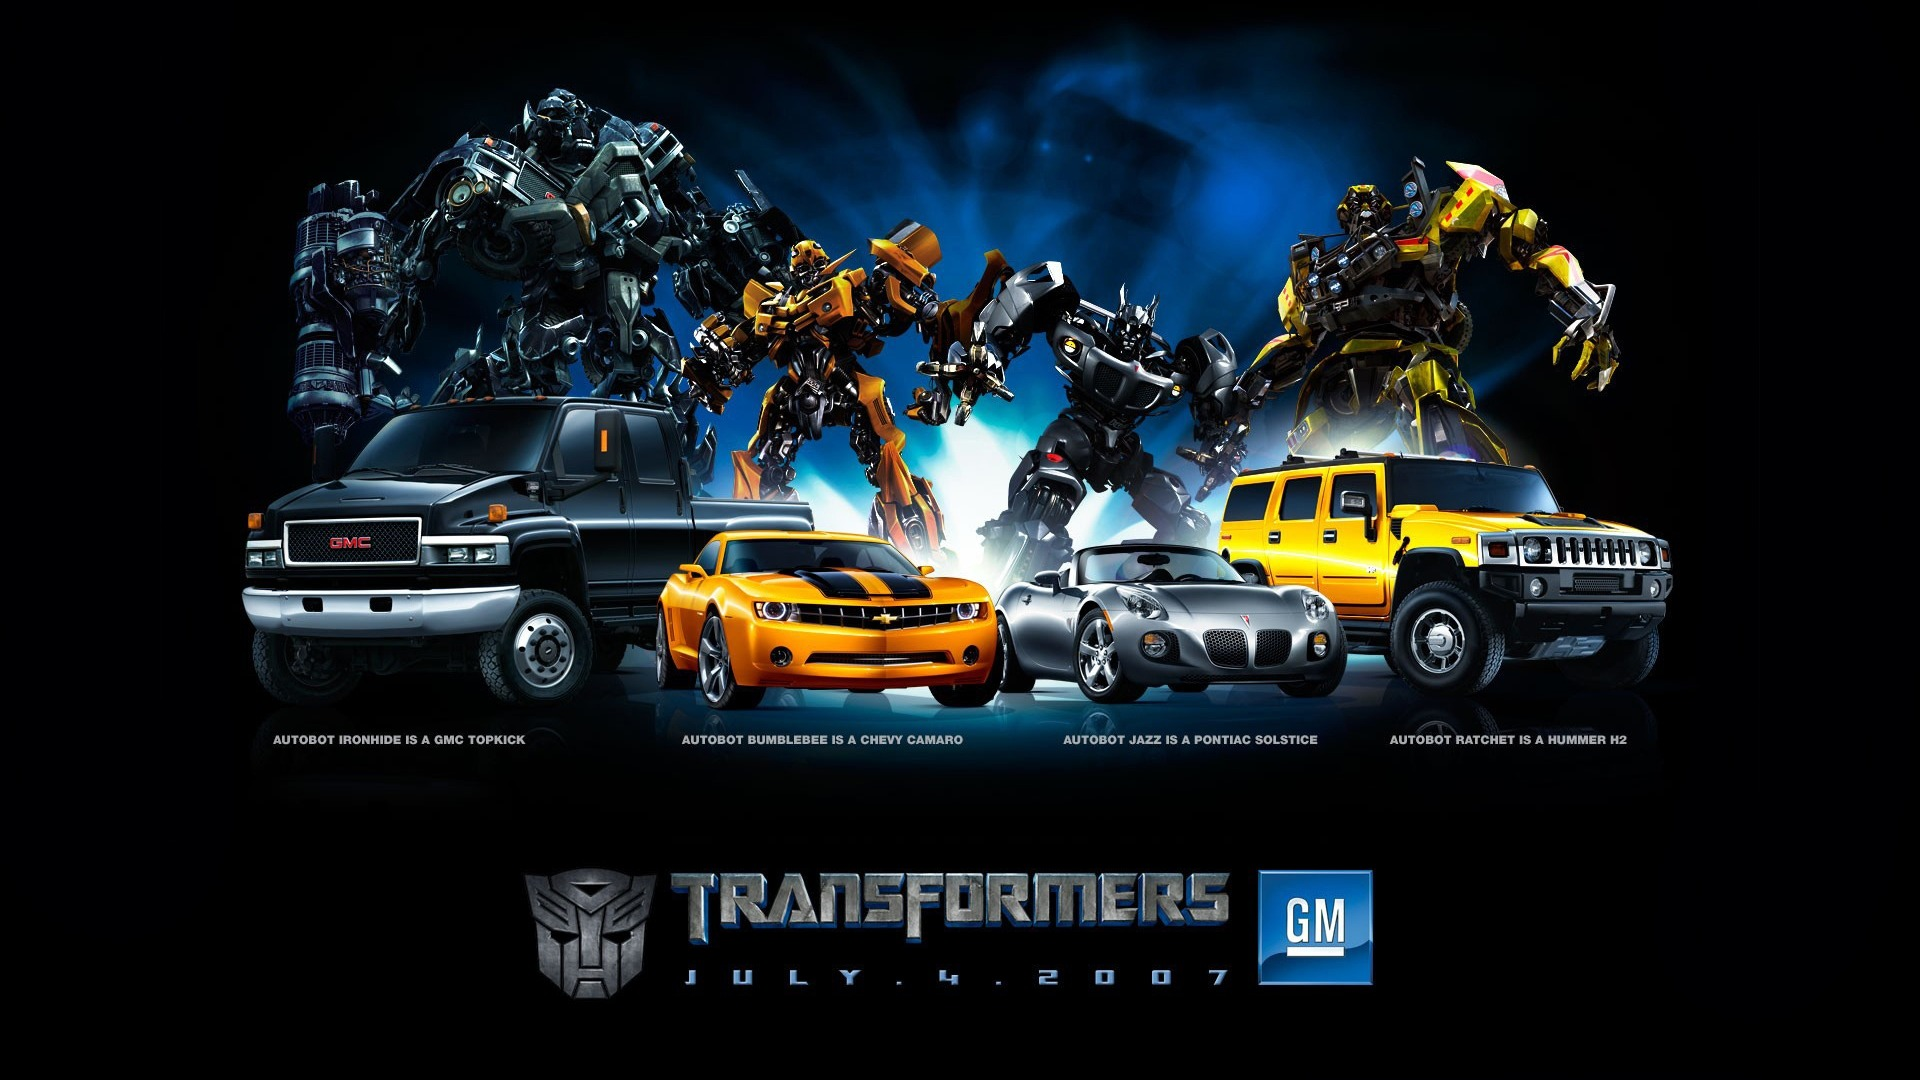 Autobots Transformers Wallpaper Movie